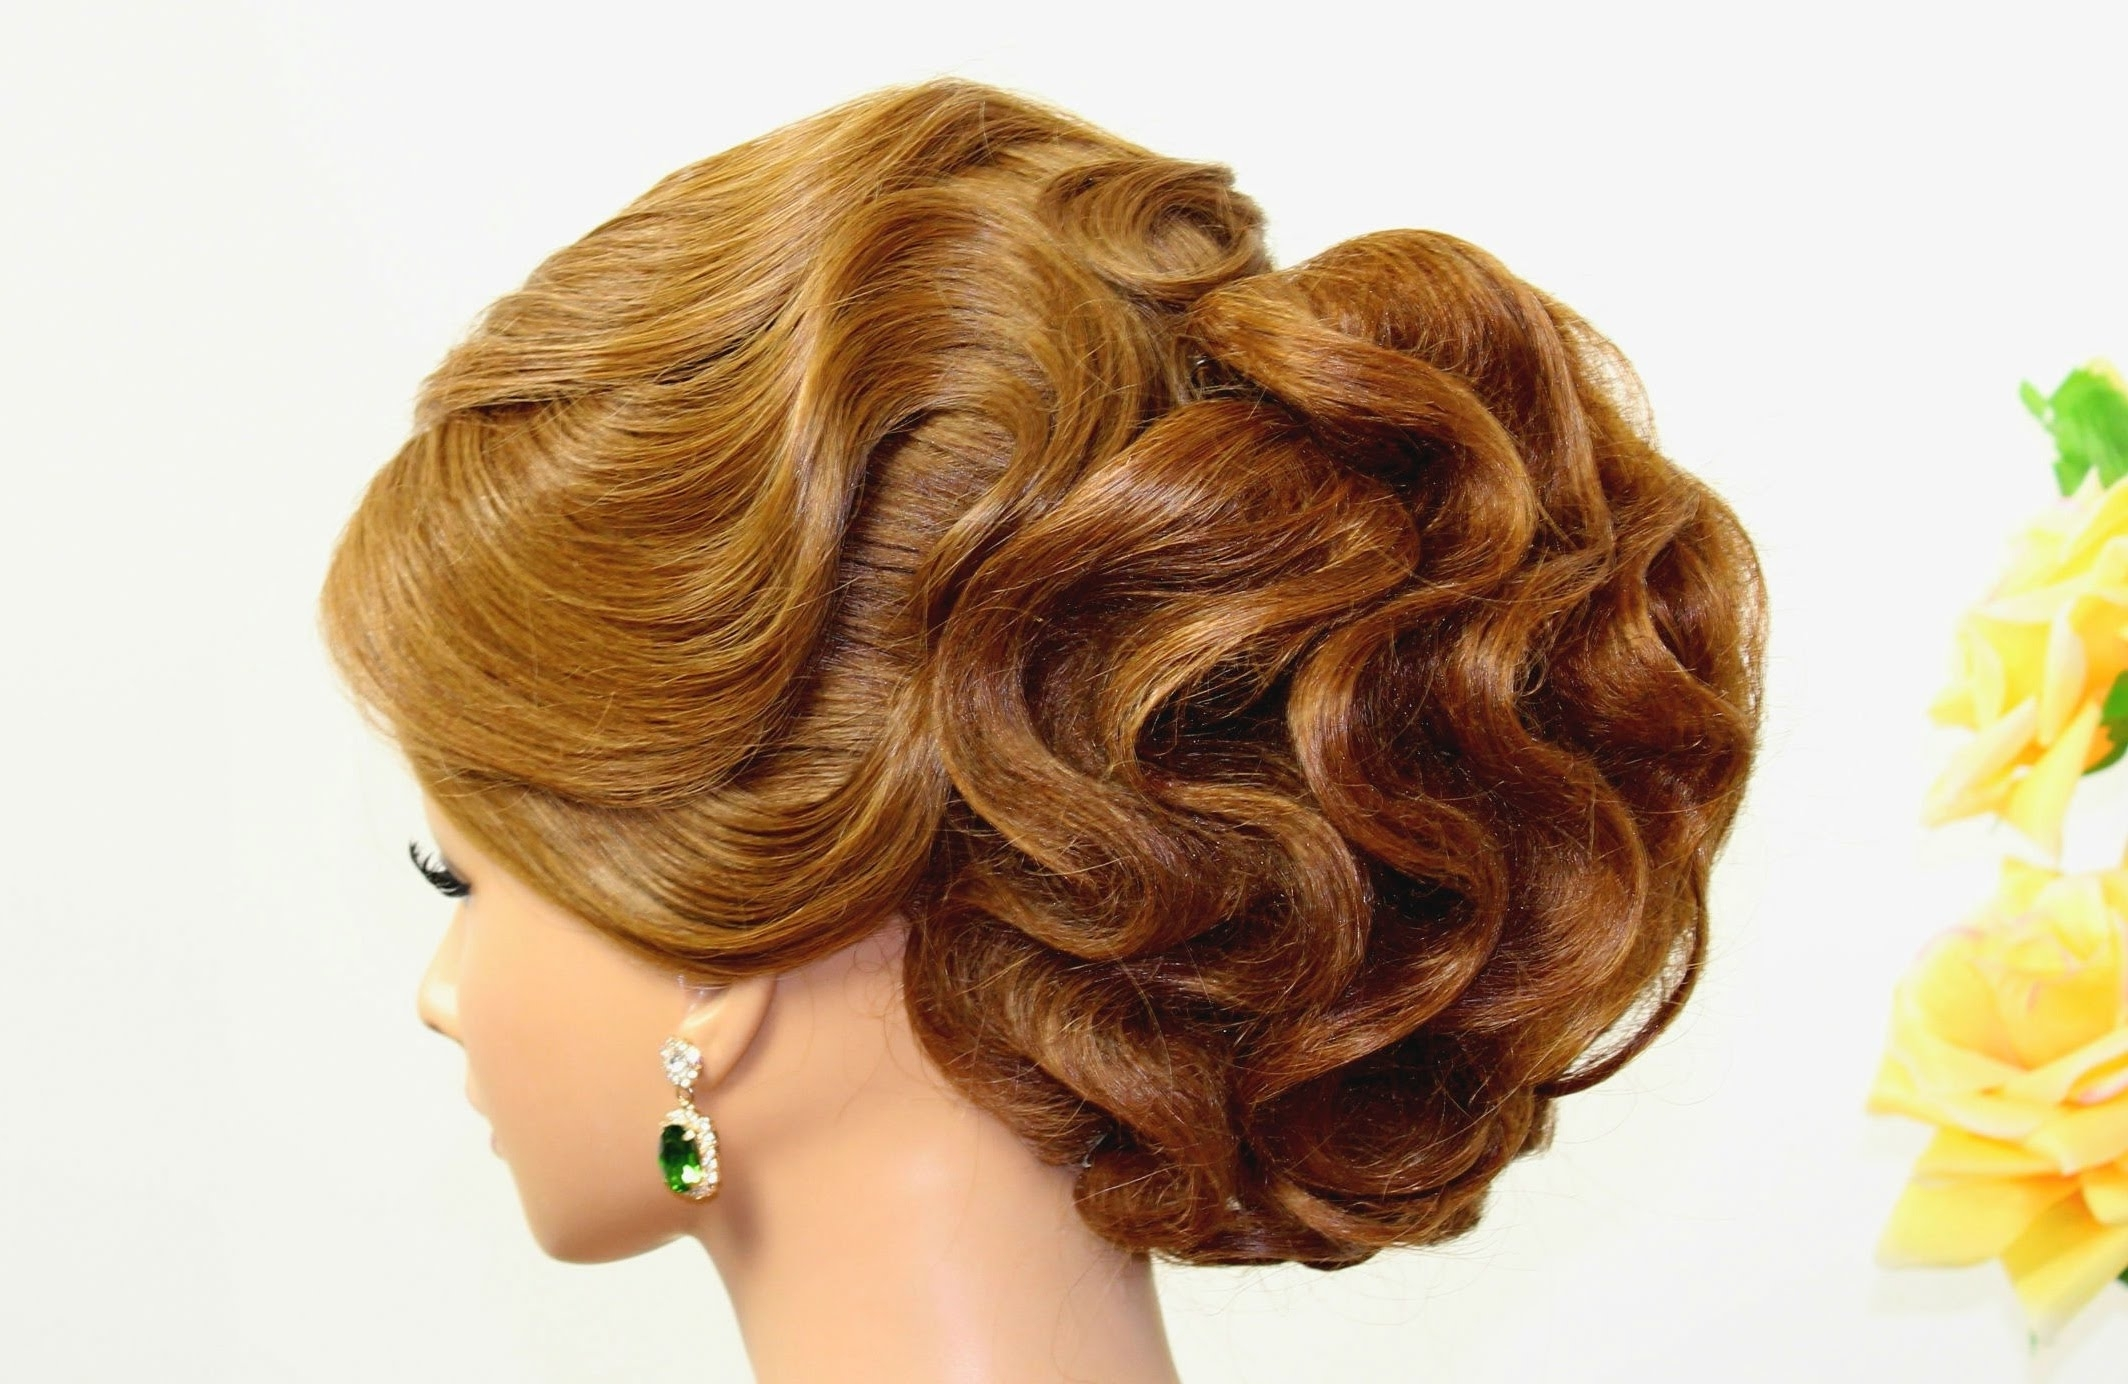 Well Liked Wedding Updos Hairstyles Throughout Updo Hairstyle For Long Hair Tutorial With Hair Nets (View 13 of 15)